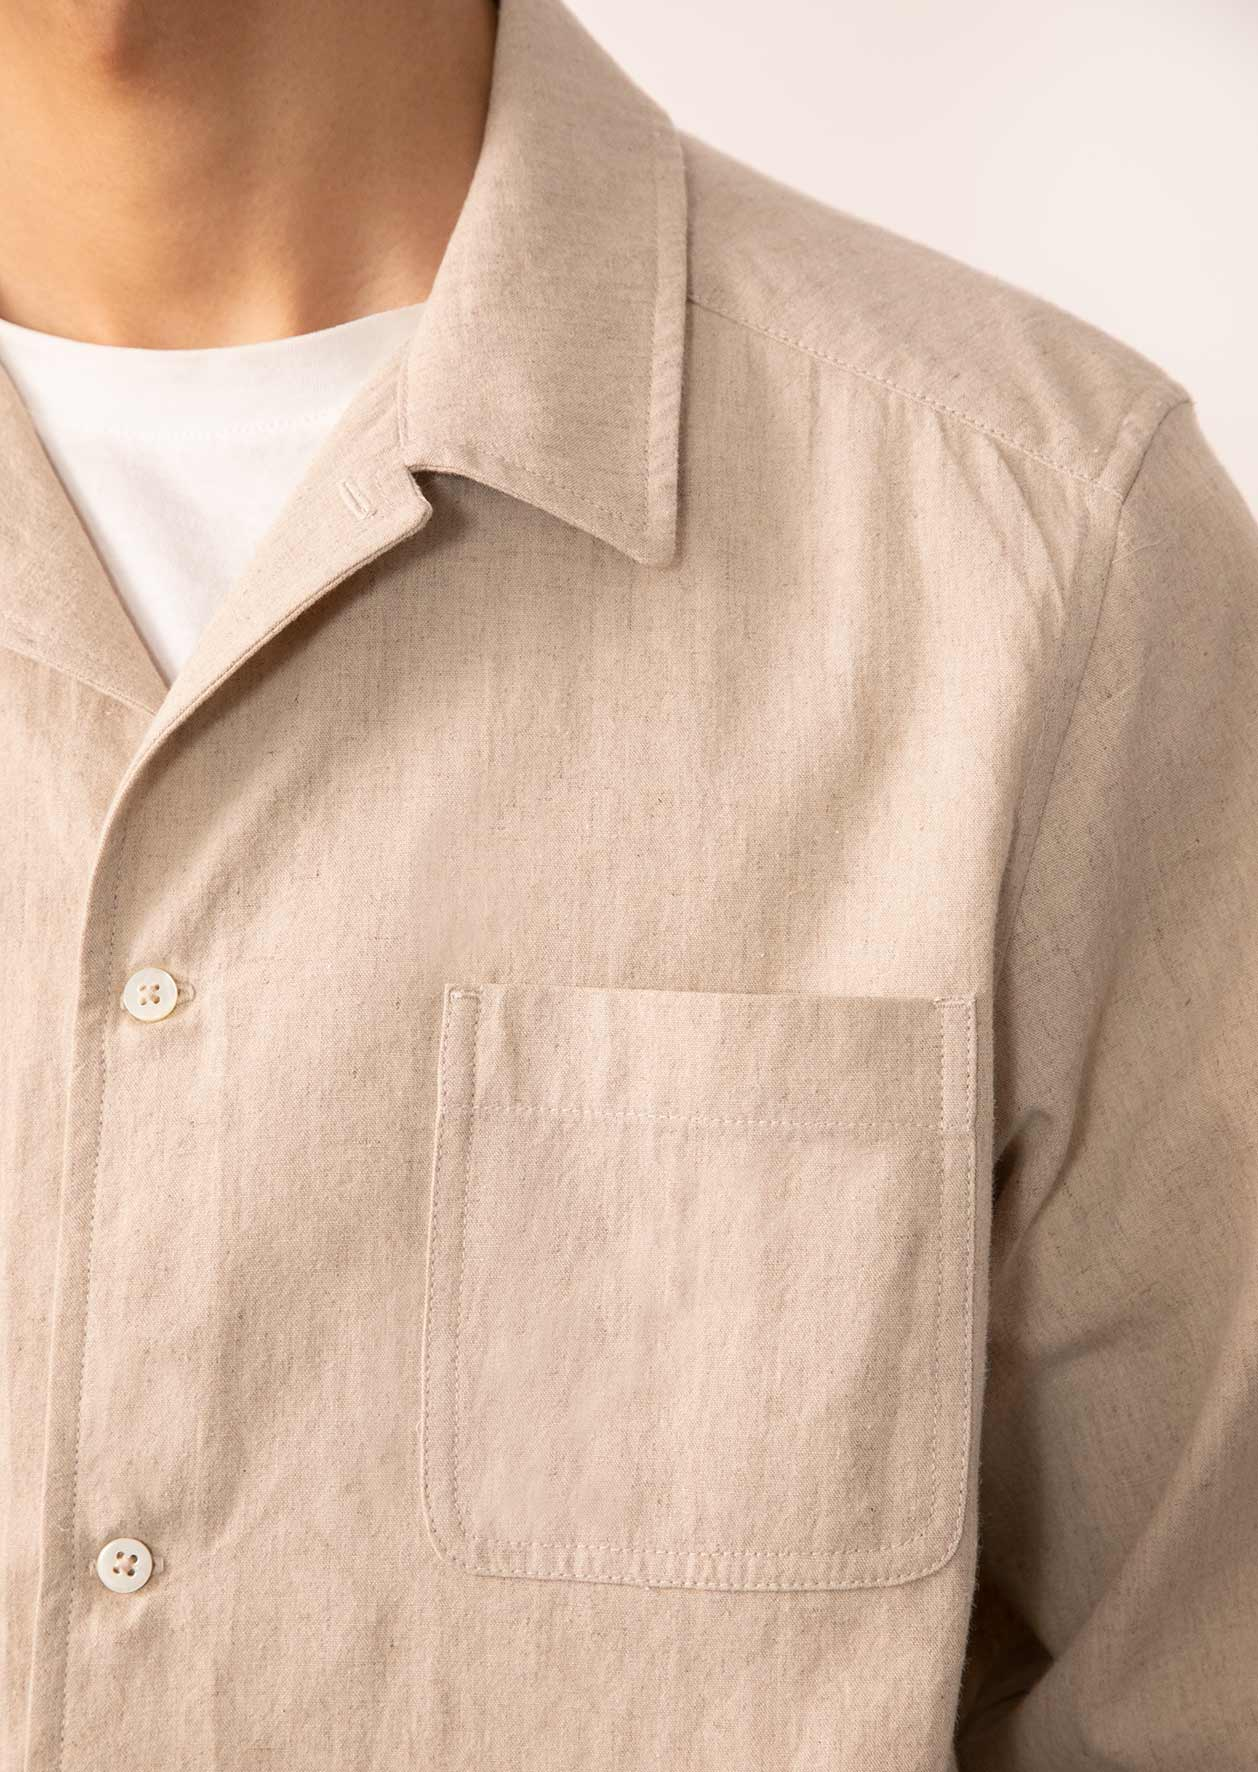 De Bonne Facture - Painter's jacket - Japanese linen & cotton - Beige